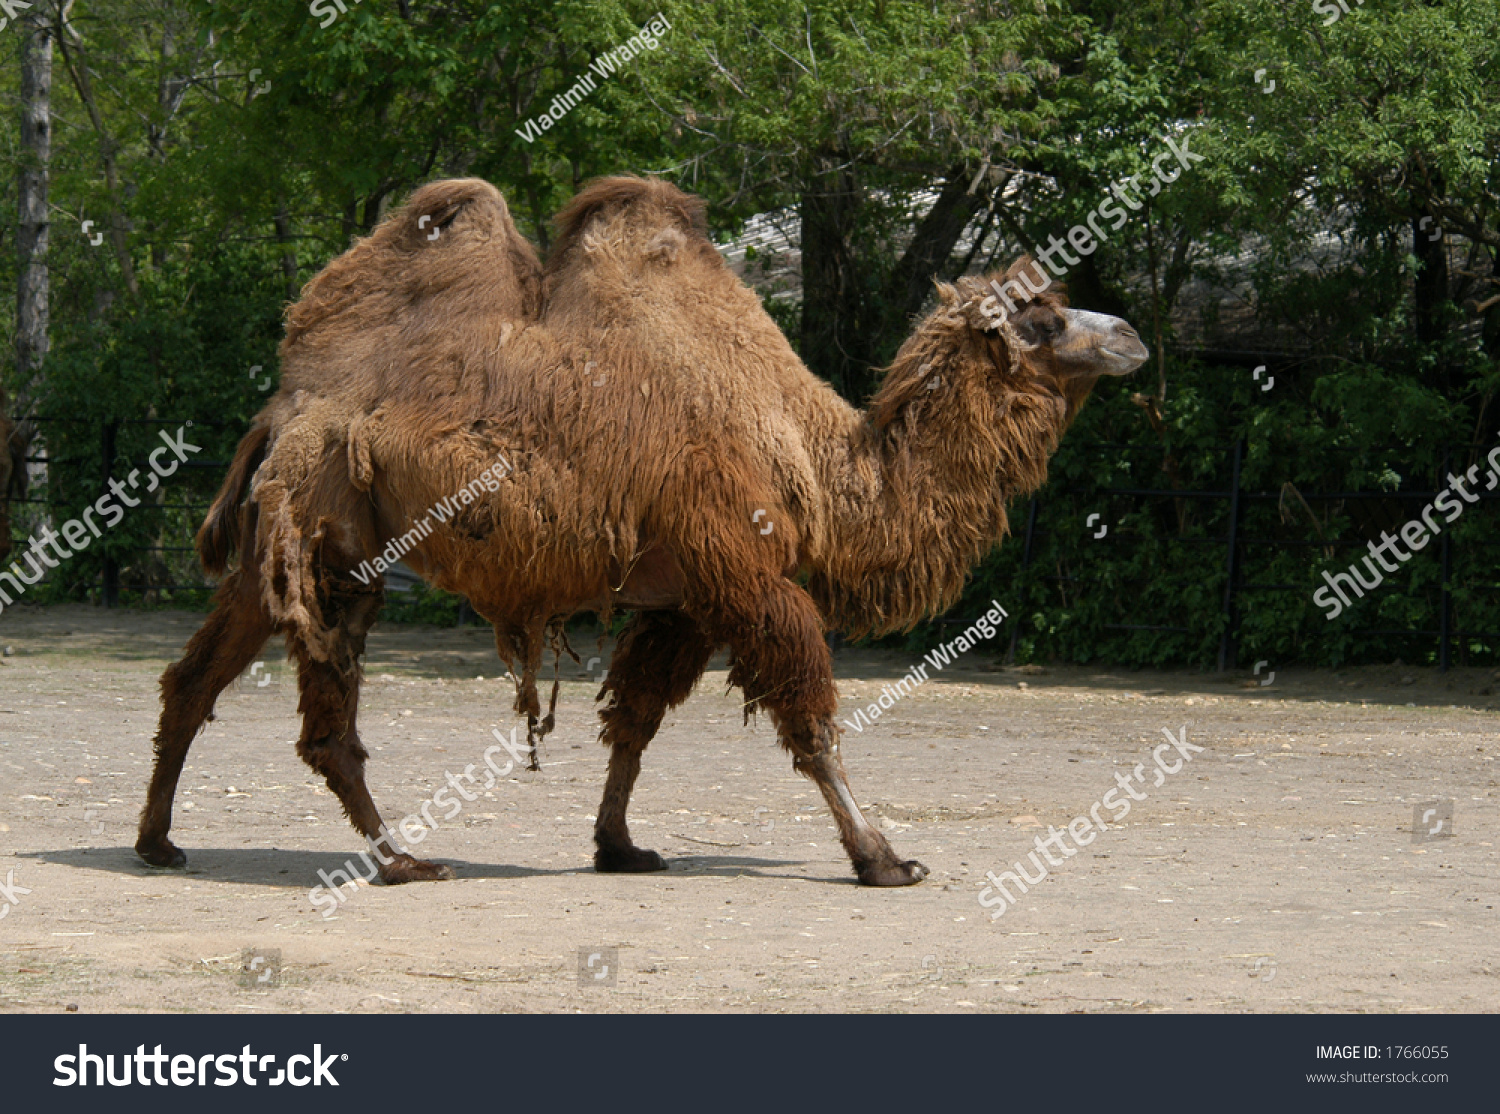 Bactrian Two Humped Camel Also Known As A Camelus Bactrianus